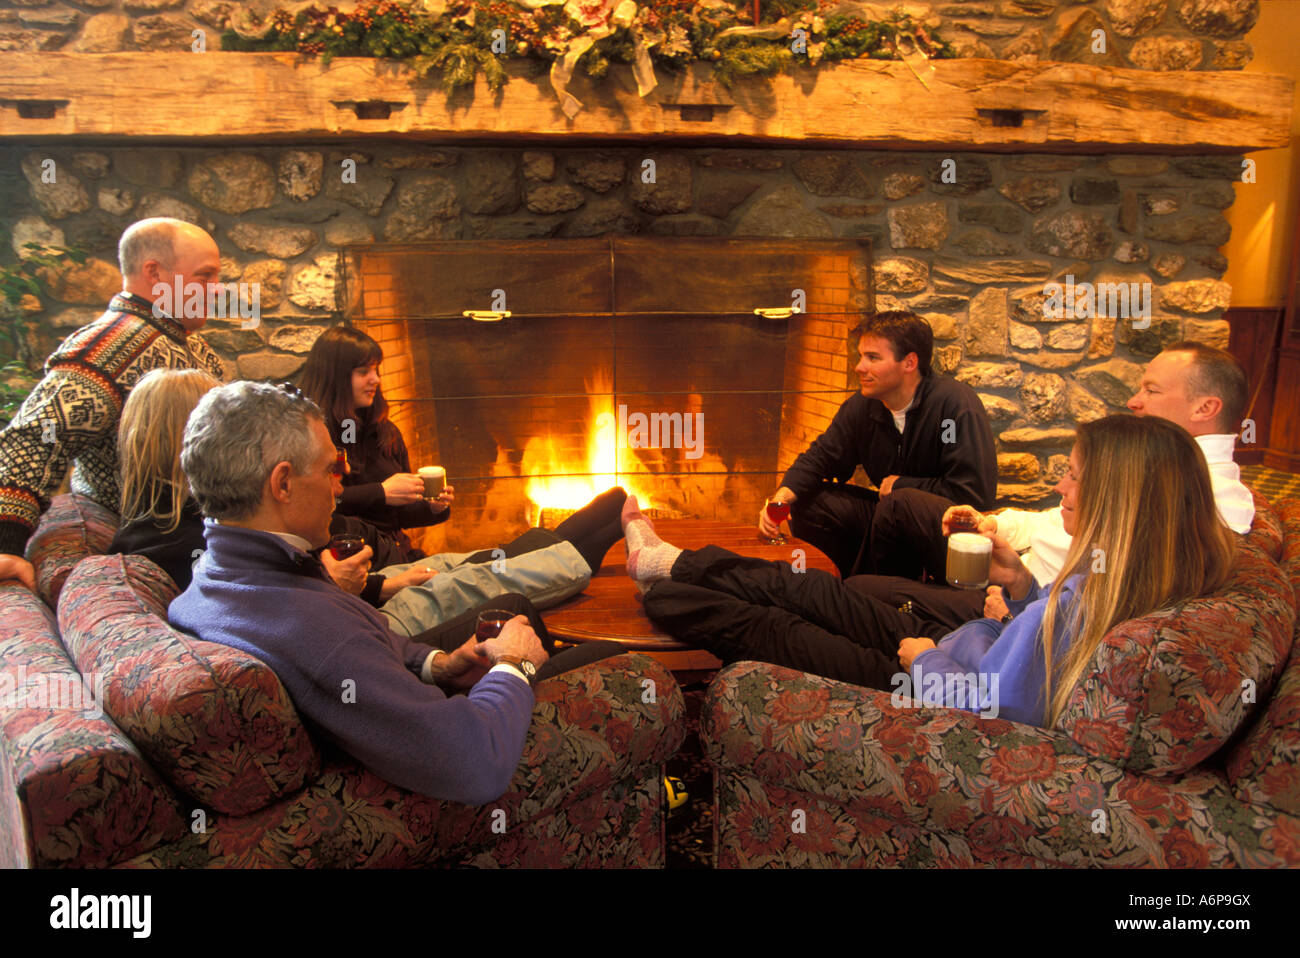 group of friends relaxing apres ski in front of a roaring log fire